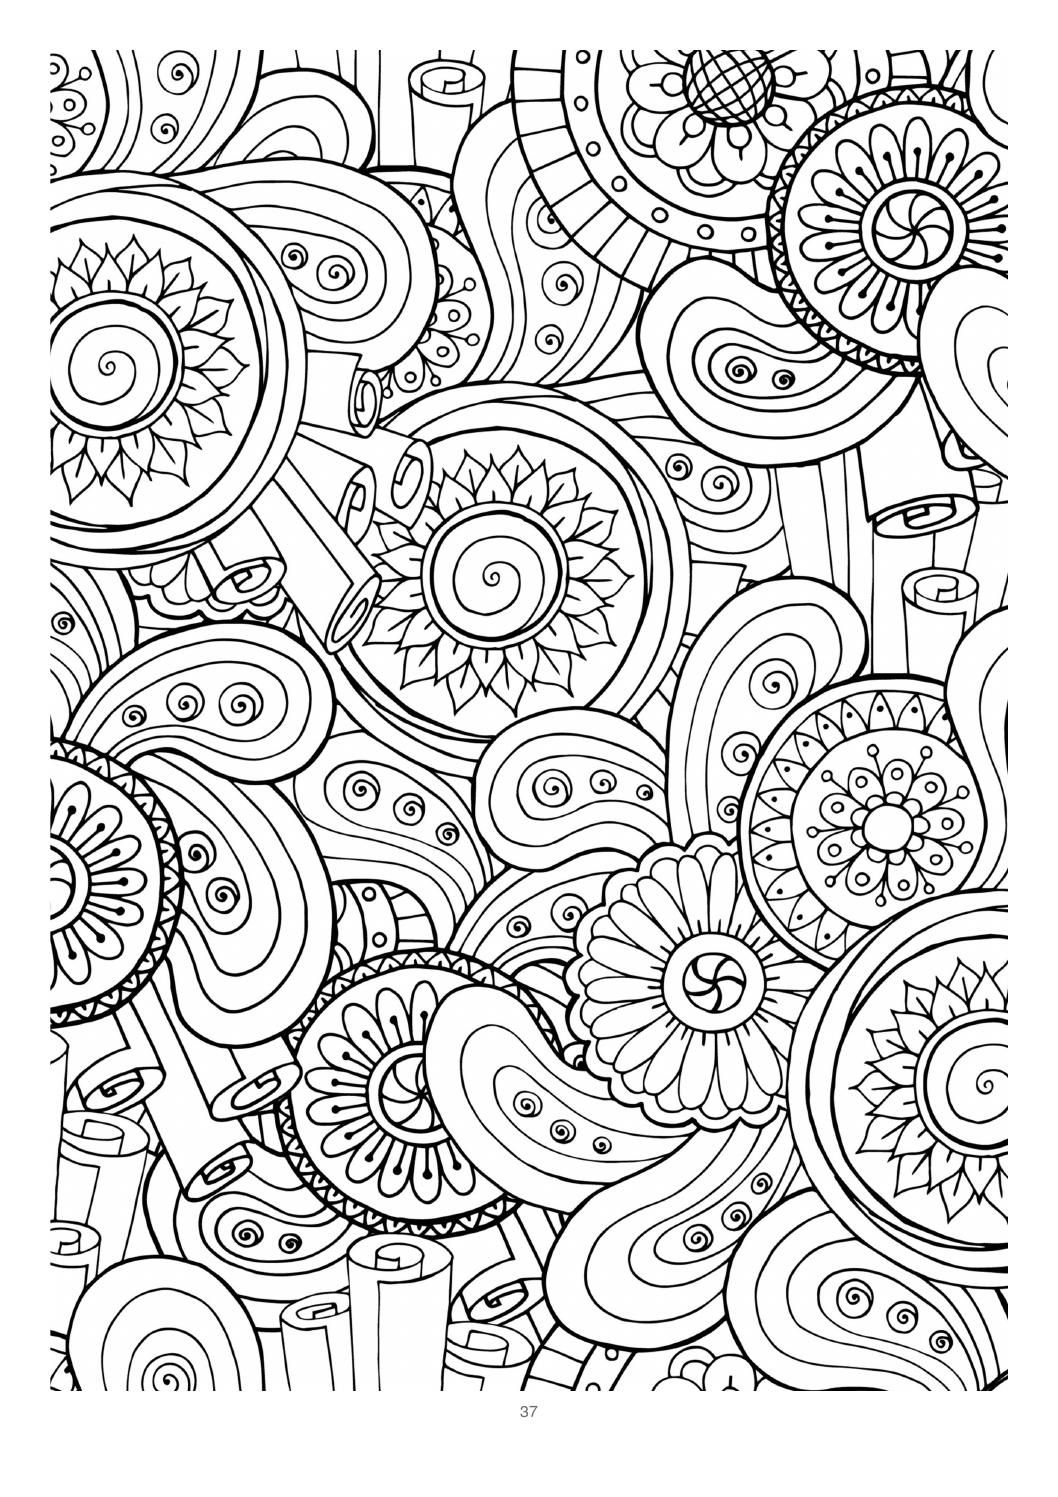 Mind Massage colouring book for adults | Coloring books, Colouring art  therapy, Pattern coloring pages